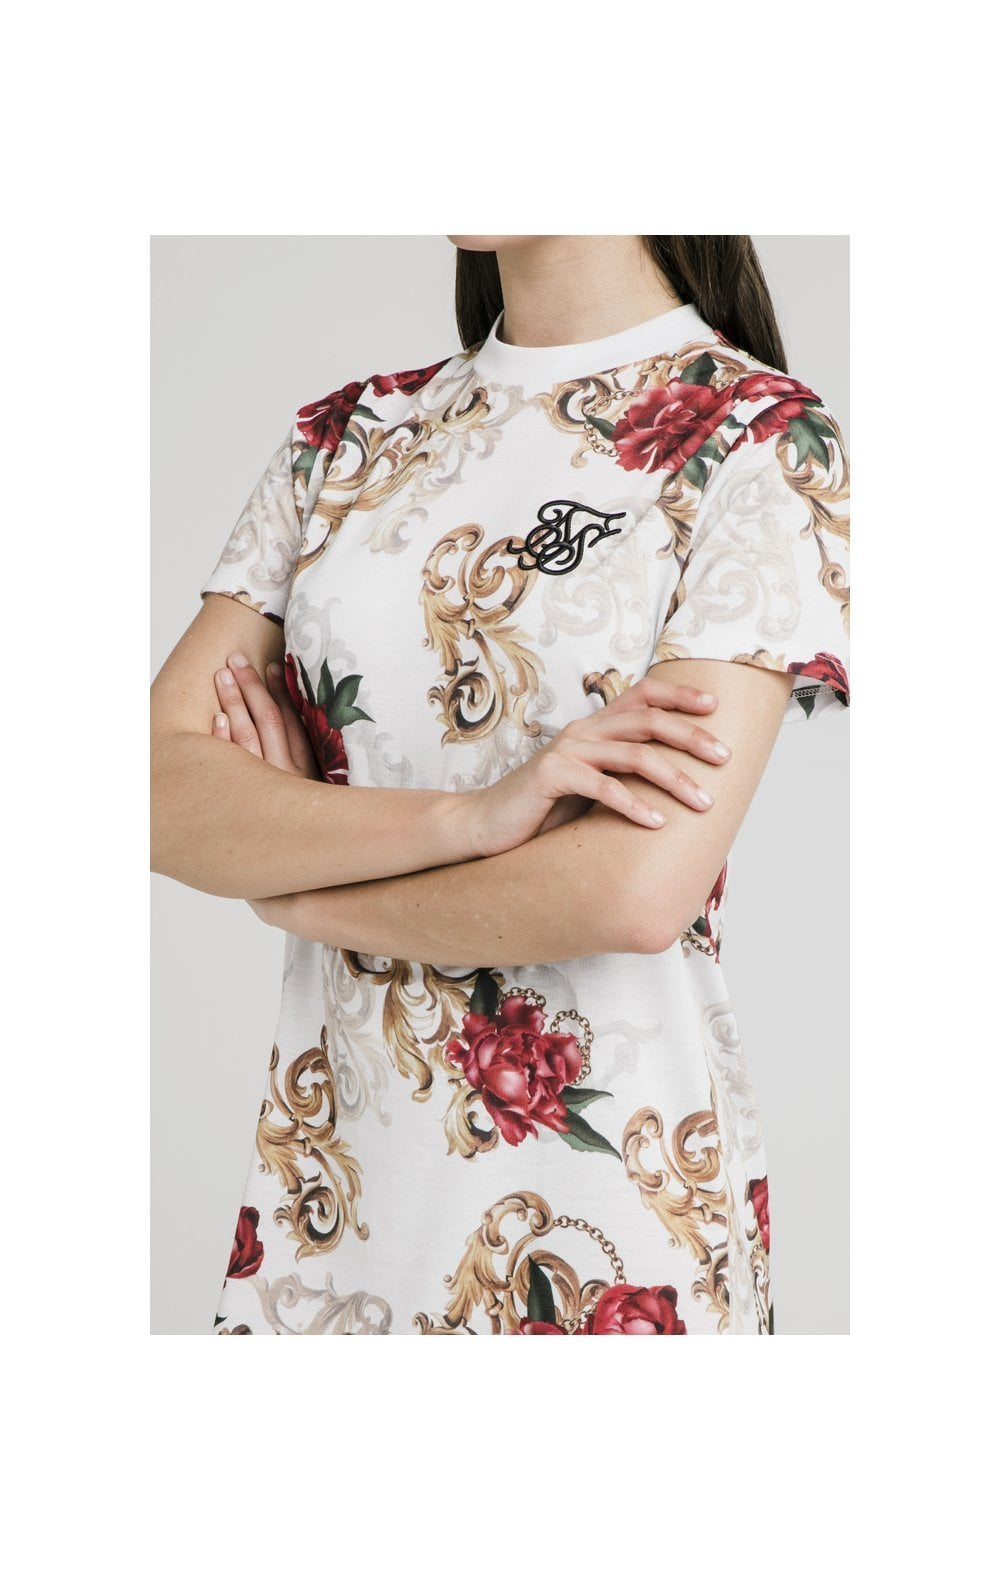 SikSilk T-Shirt Dress - White & Floral Elegance